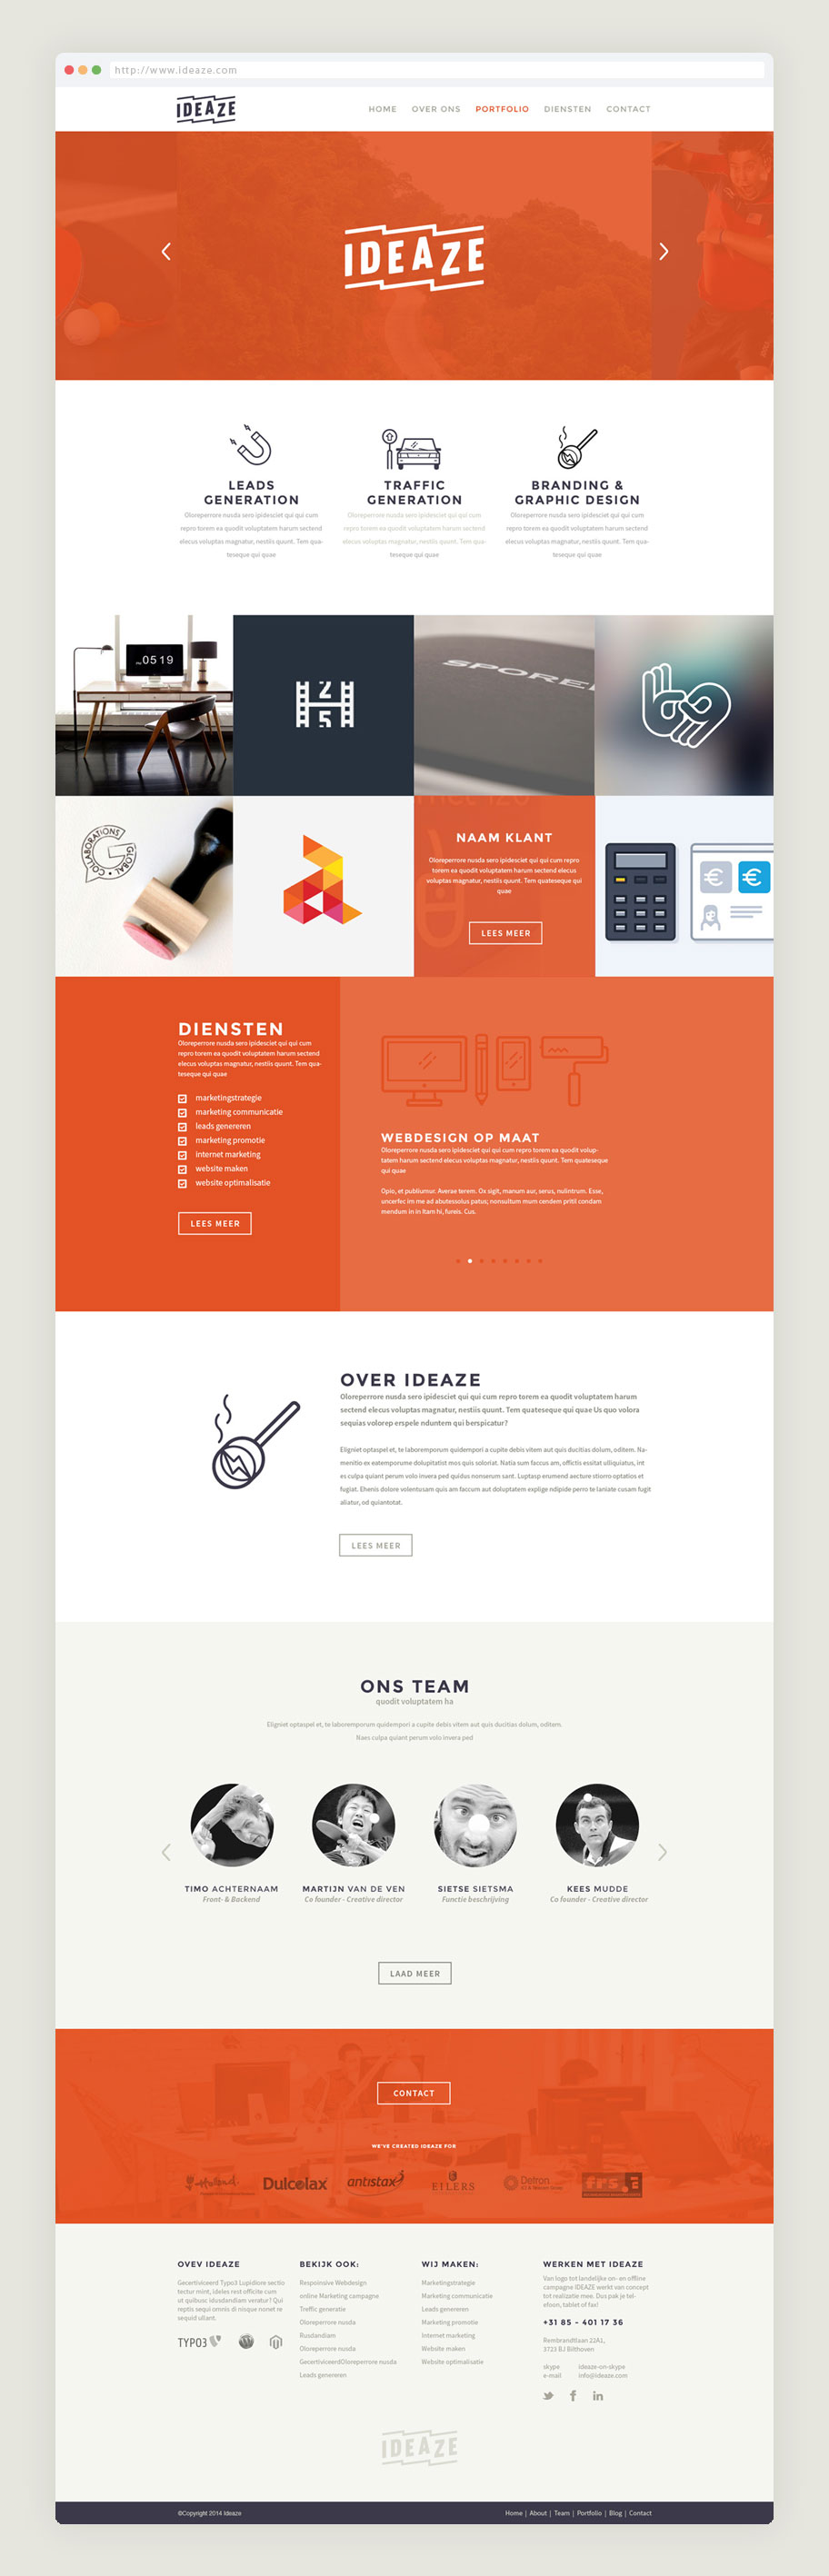 Webdesign-Ideaze-website-ontwerp-homepage